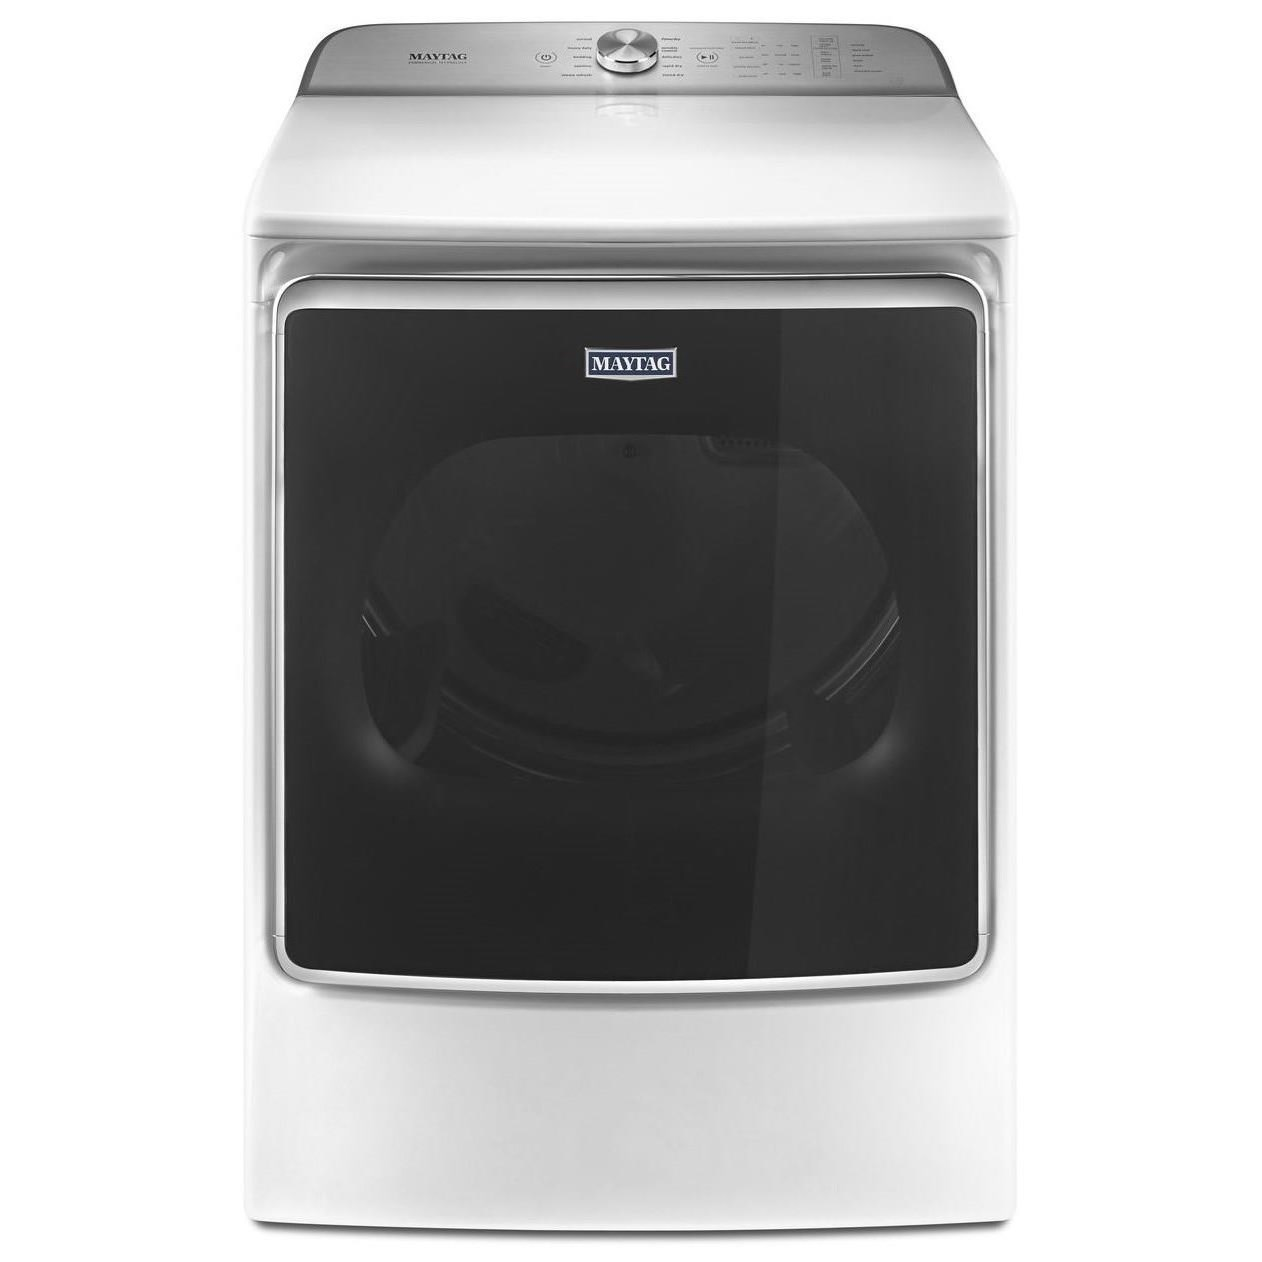 Maytag Front Load Electric Dryers 9.2 Cu. Ft. Extra-Large Capacity Dryer - Item Number: MEDB955FW